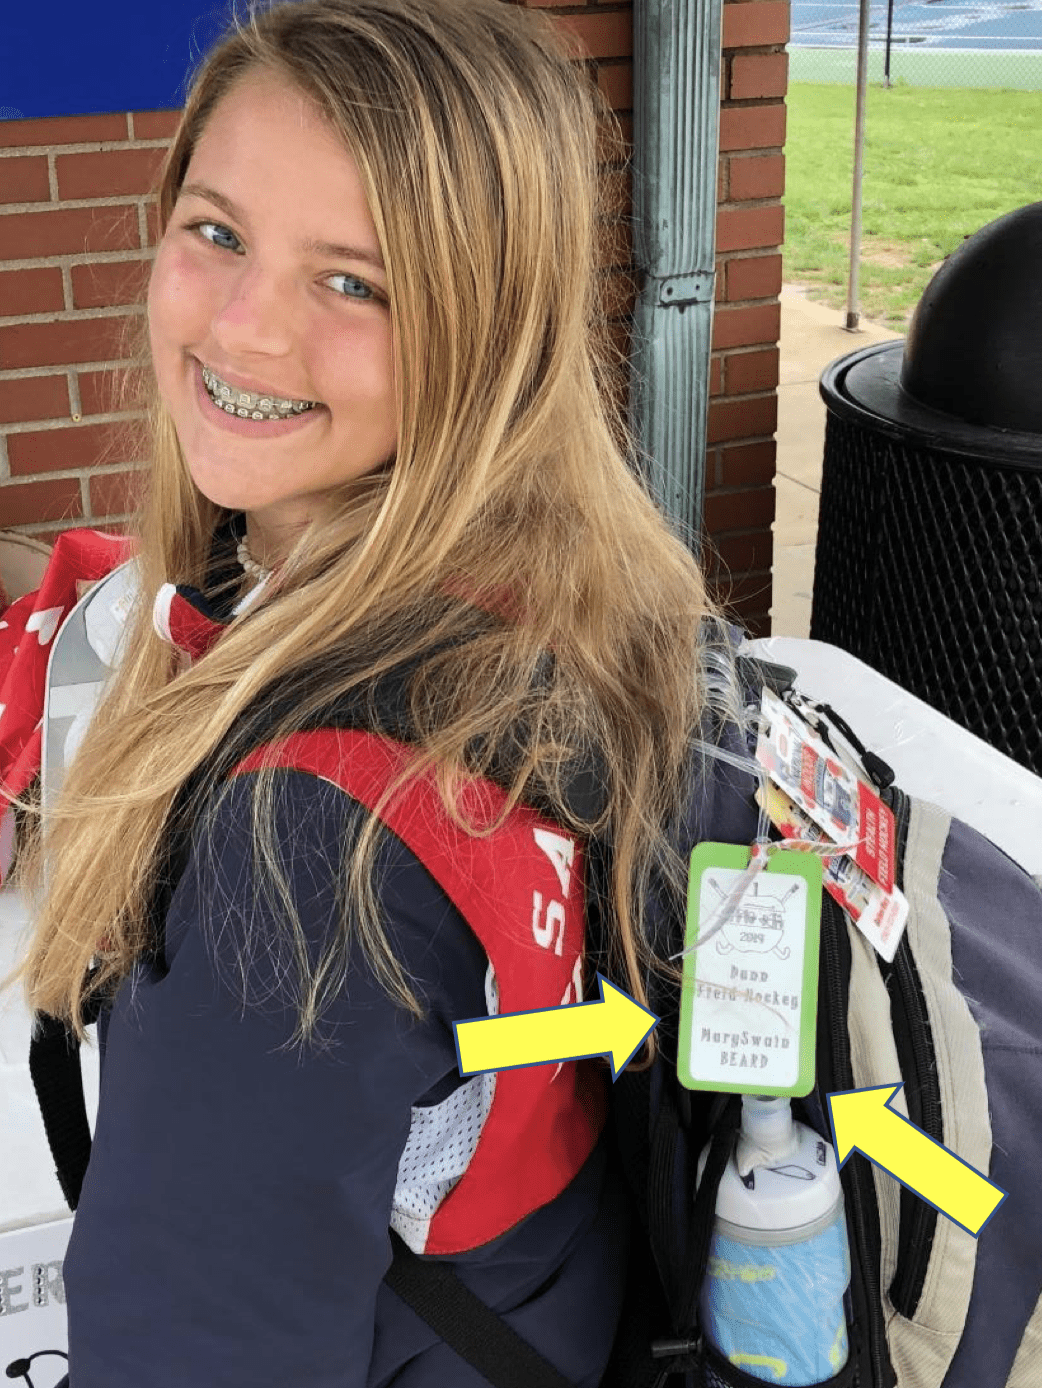 A student proudly showing off Her backpack and tags